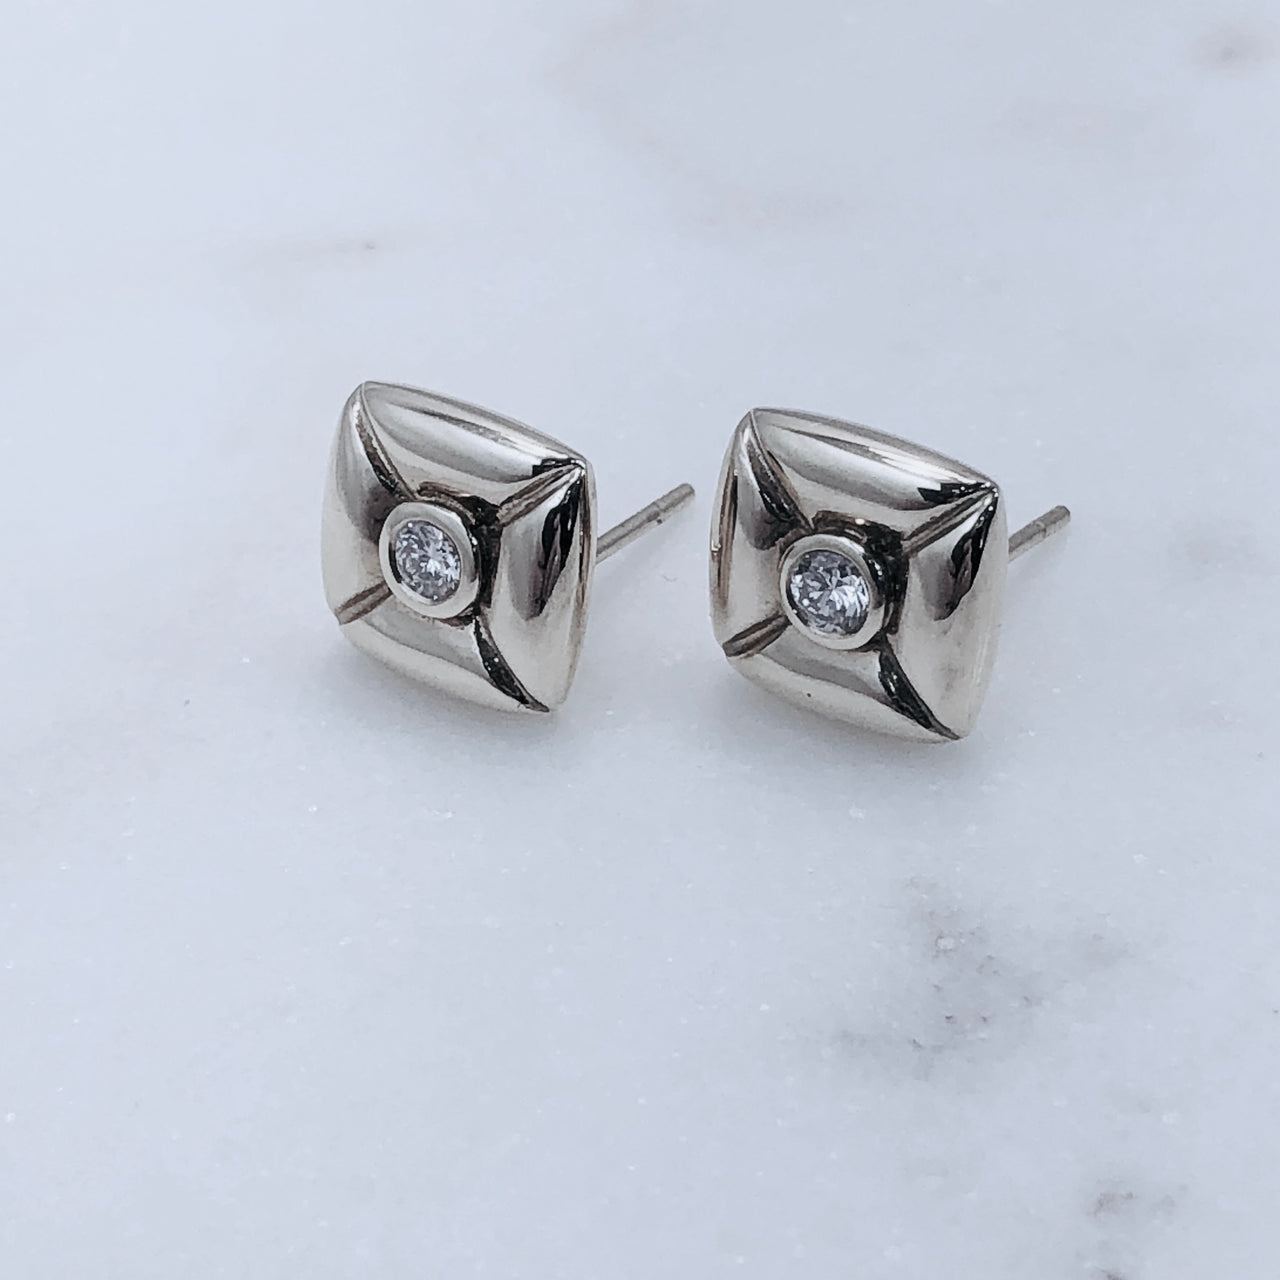 14K White Gold Pillow Diamond Earrings.